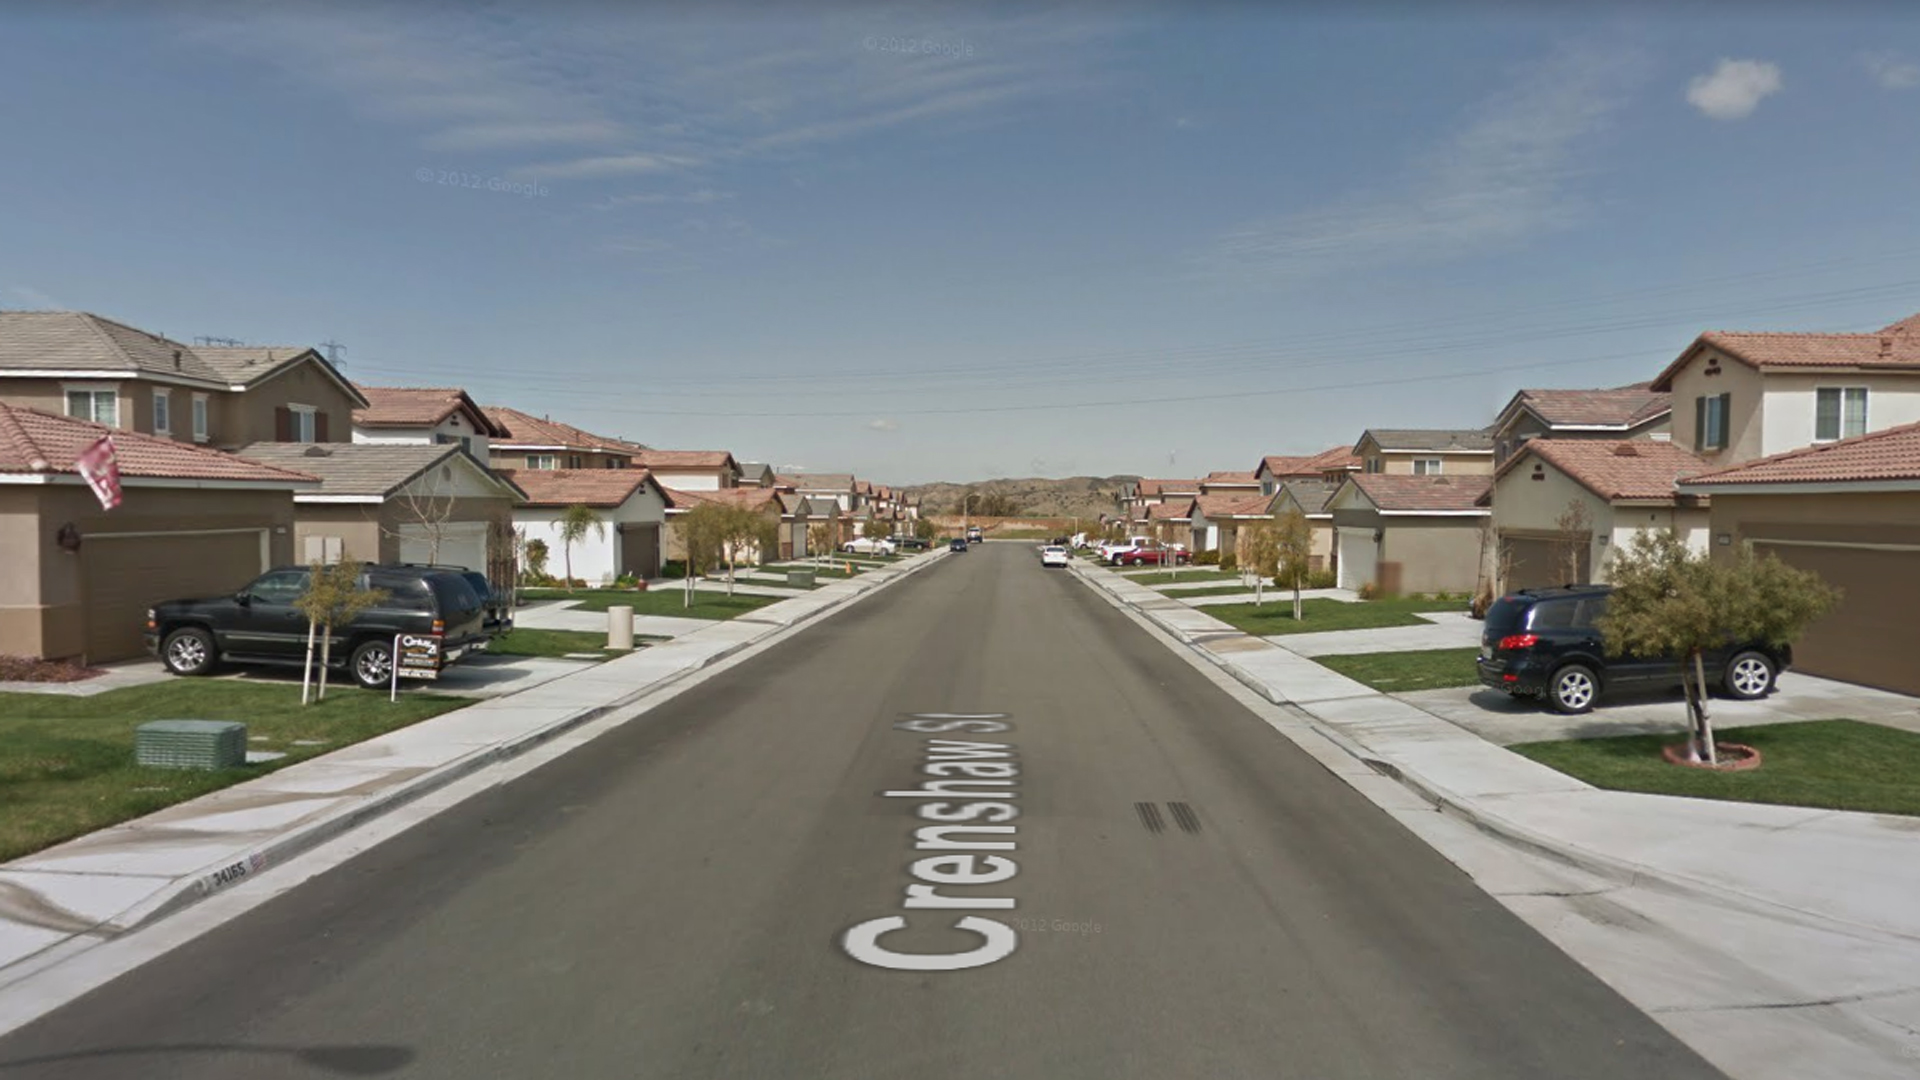 The 34400 block of Crenshaw Street in Beaumont, as pictured in a Google Street View image.